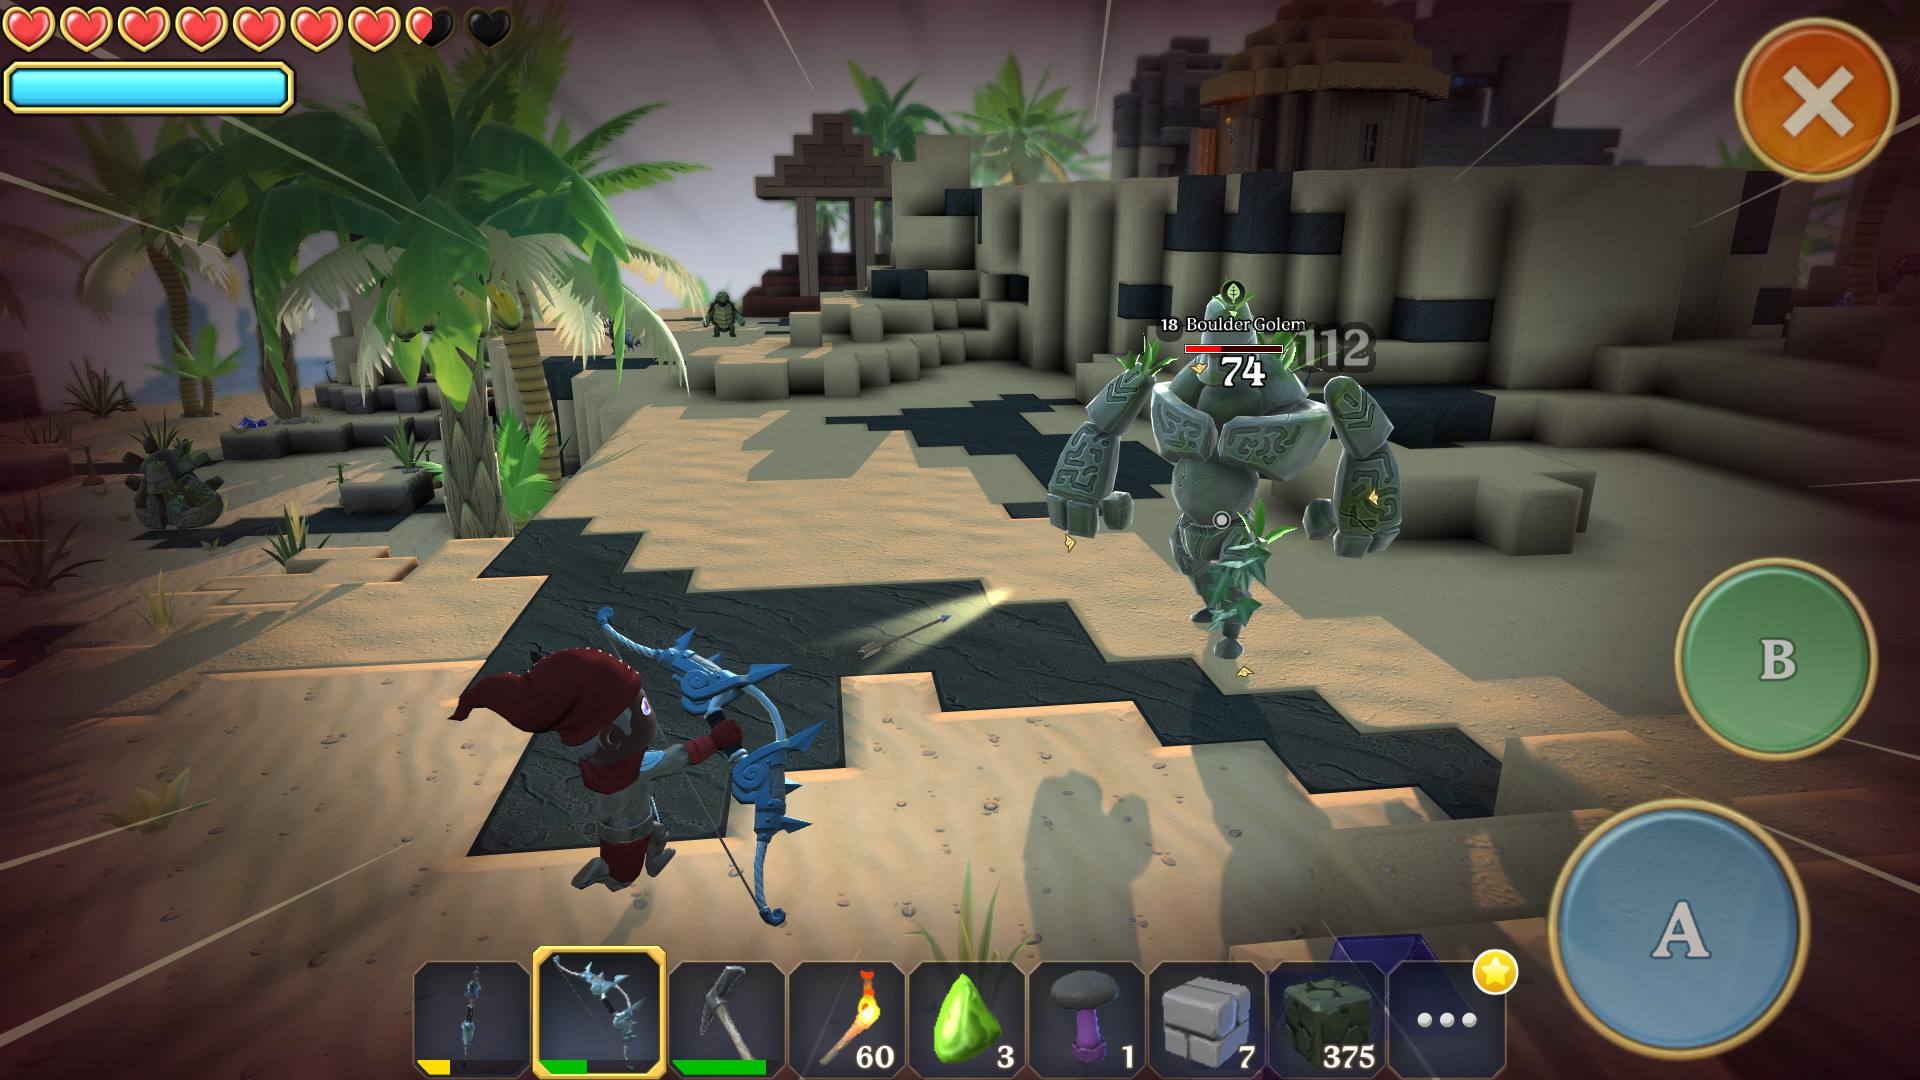 3D sandbox action-RPG 'Portal Knights' has been ported to Android